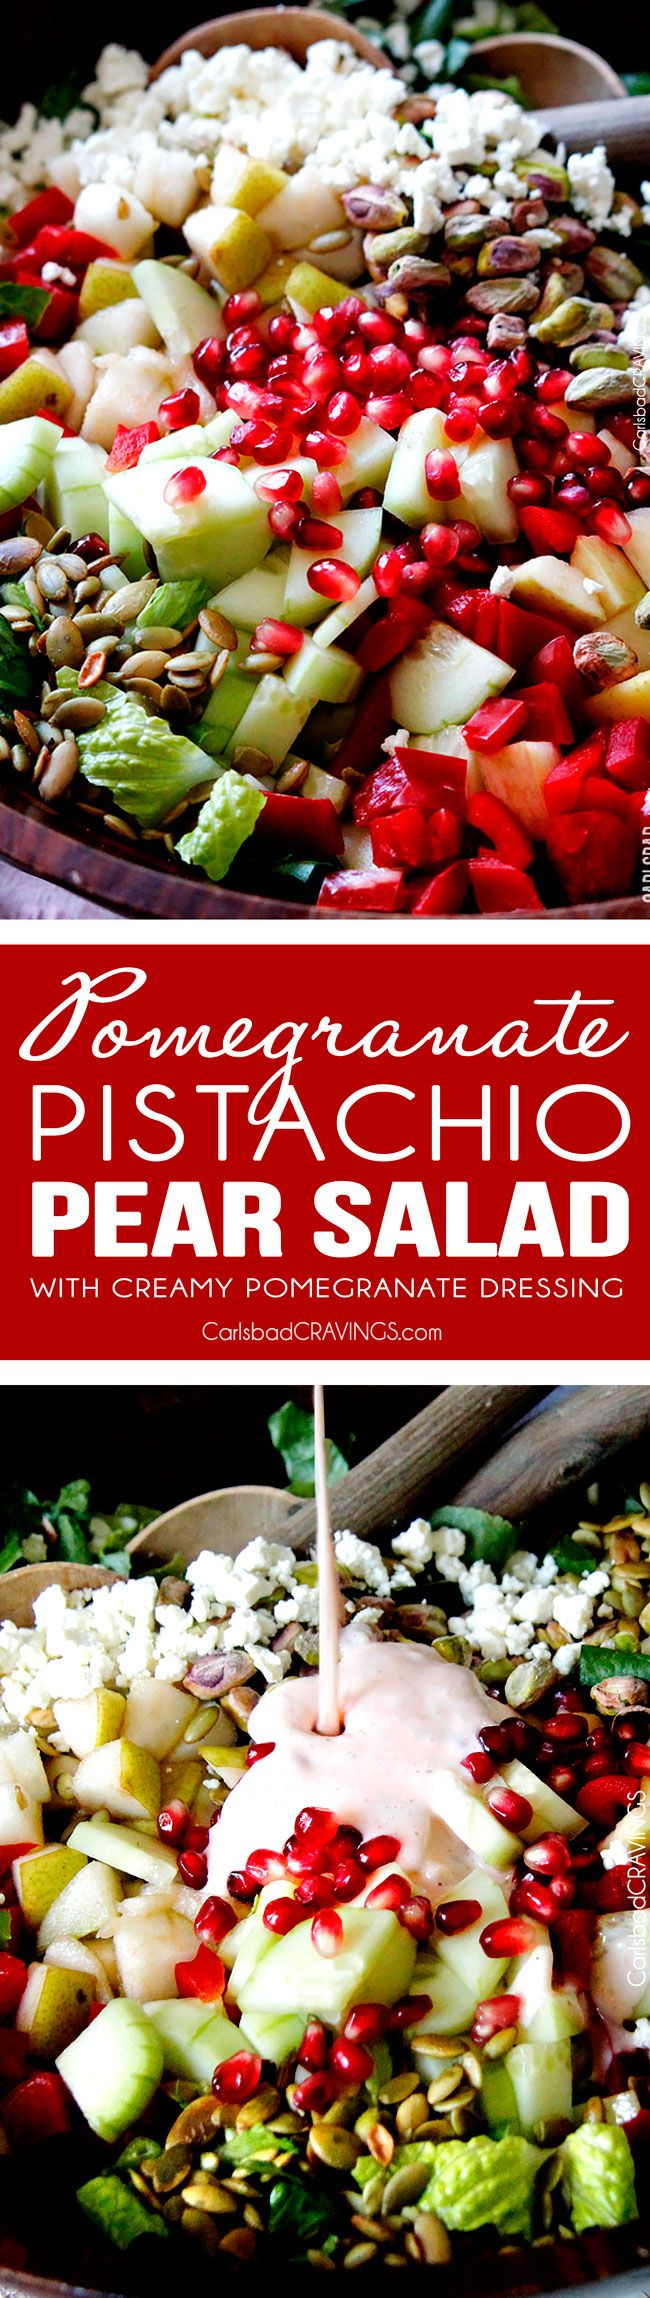 Perfect for THANKSGIVING!  This salad is SO addictingly delicious! Sweet pomegranate arils, pears, apples, crunchy cucumbers and peppers complimented by salty roasted pistachios and pepitas all doused in Creamy Pomegranate Dressing! via @carlsbadcraving